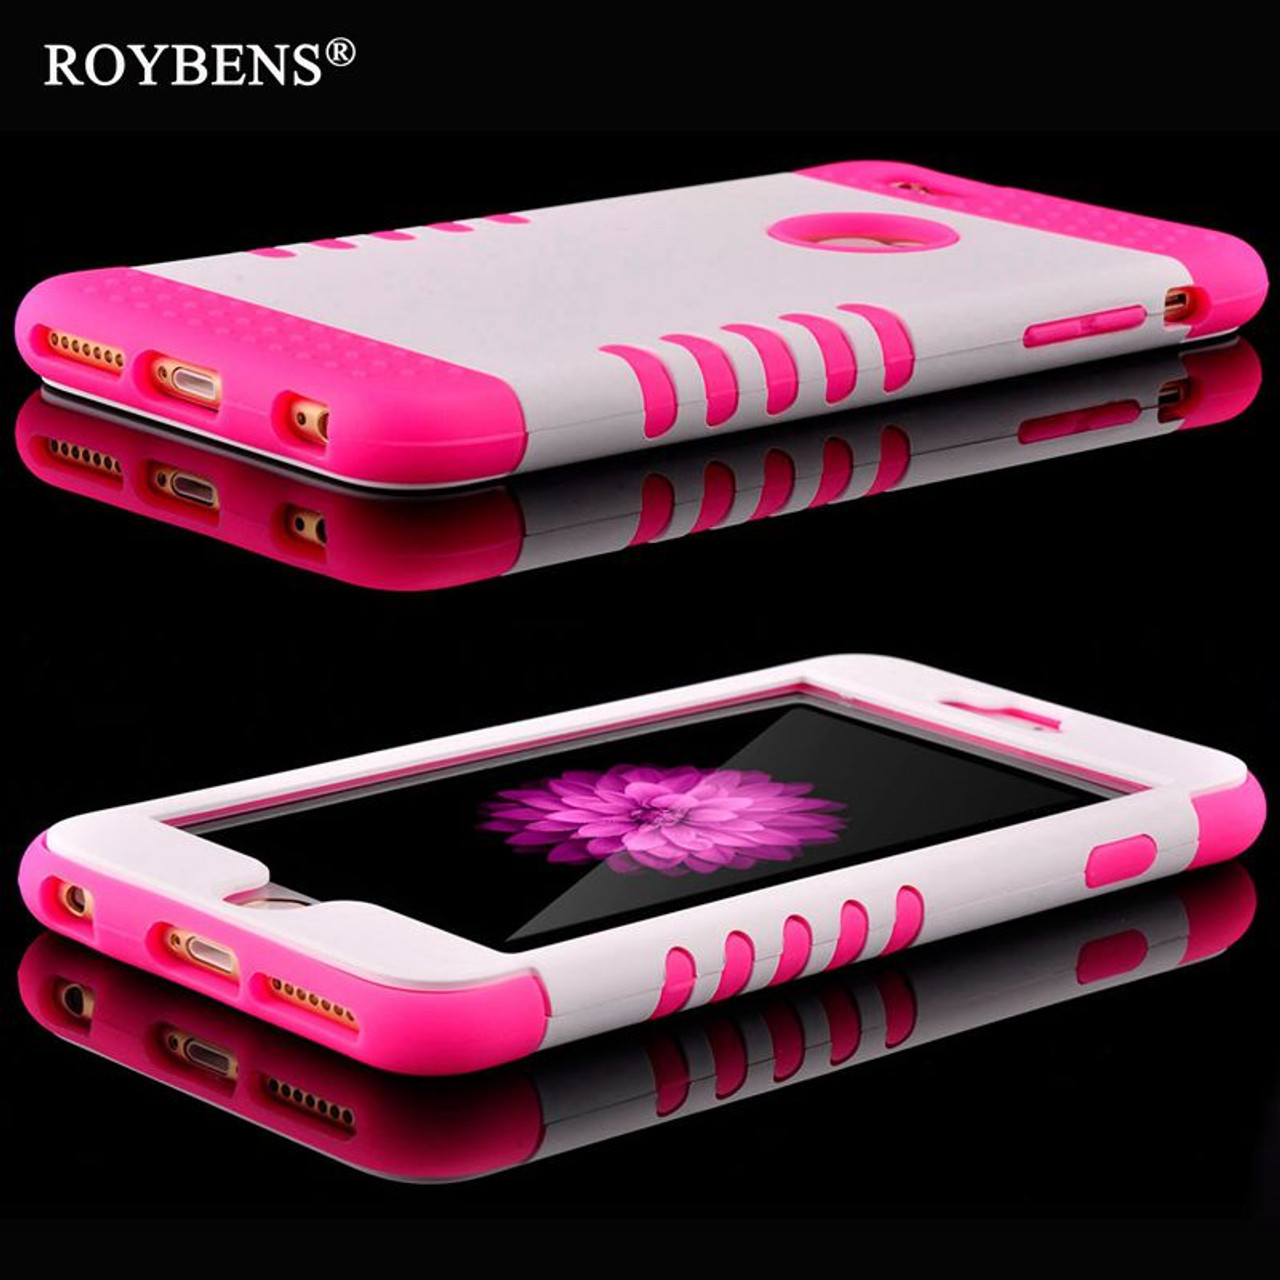 new concept 3314f 22ef4 Roybens For iPhone 6S 5S Case Luxury 3 in 1 Soft Silicone Cover For iPhone  6 Plus 5 5S SE Rugged PC TPU Hybrid Armor 360 Cases